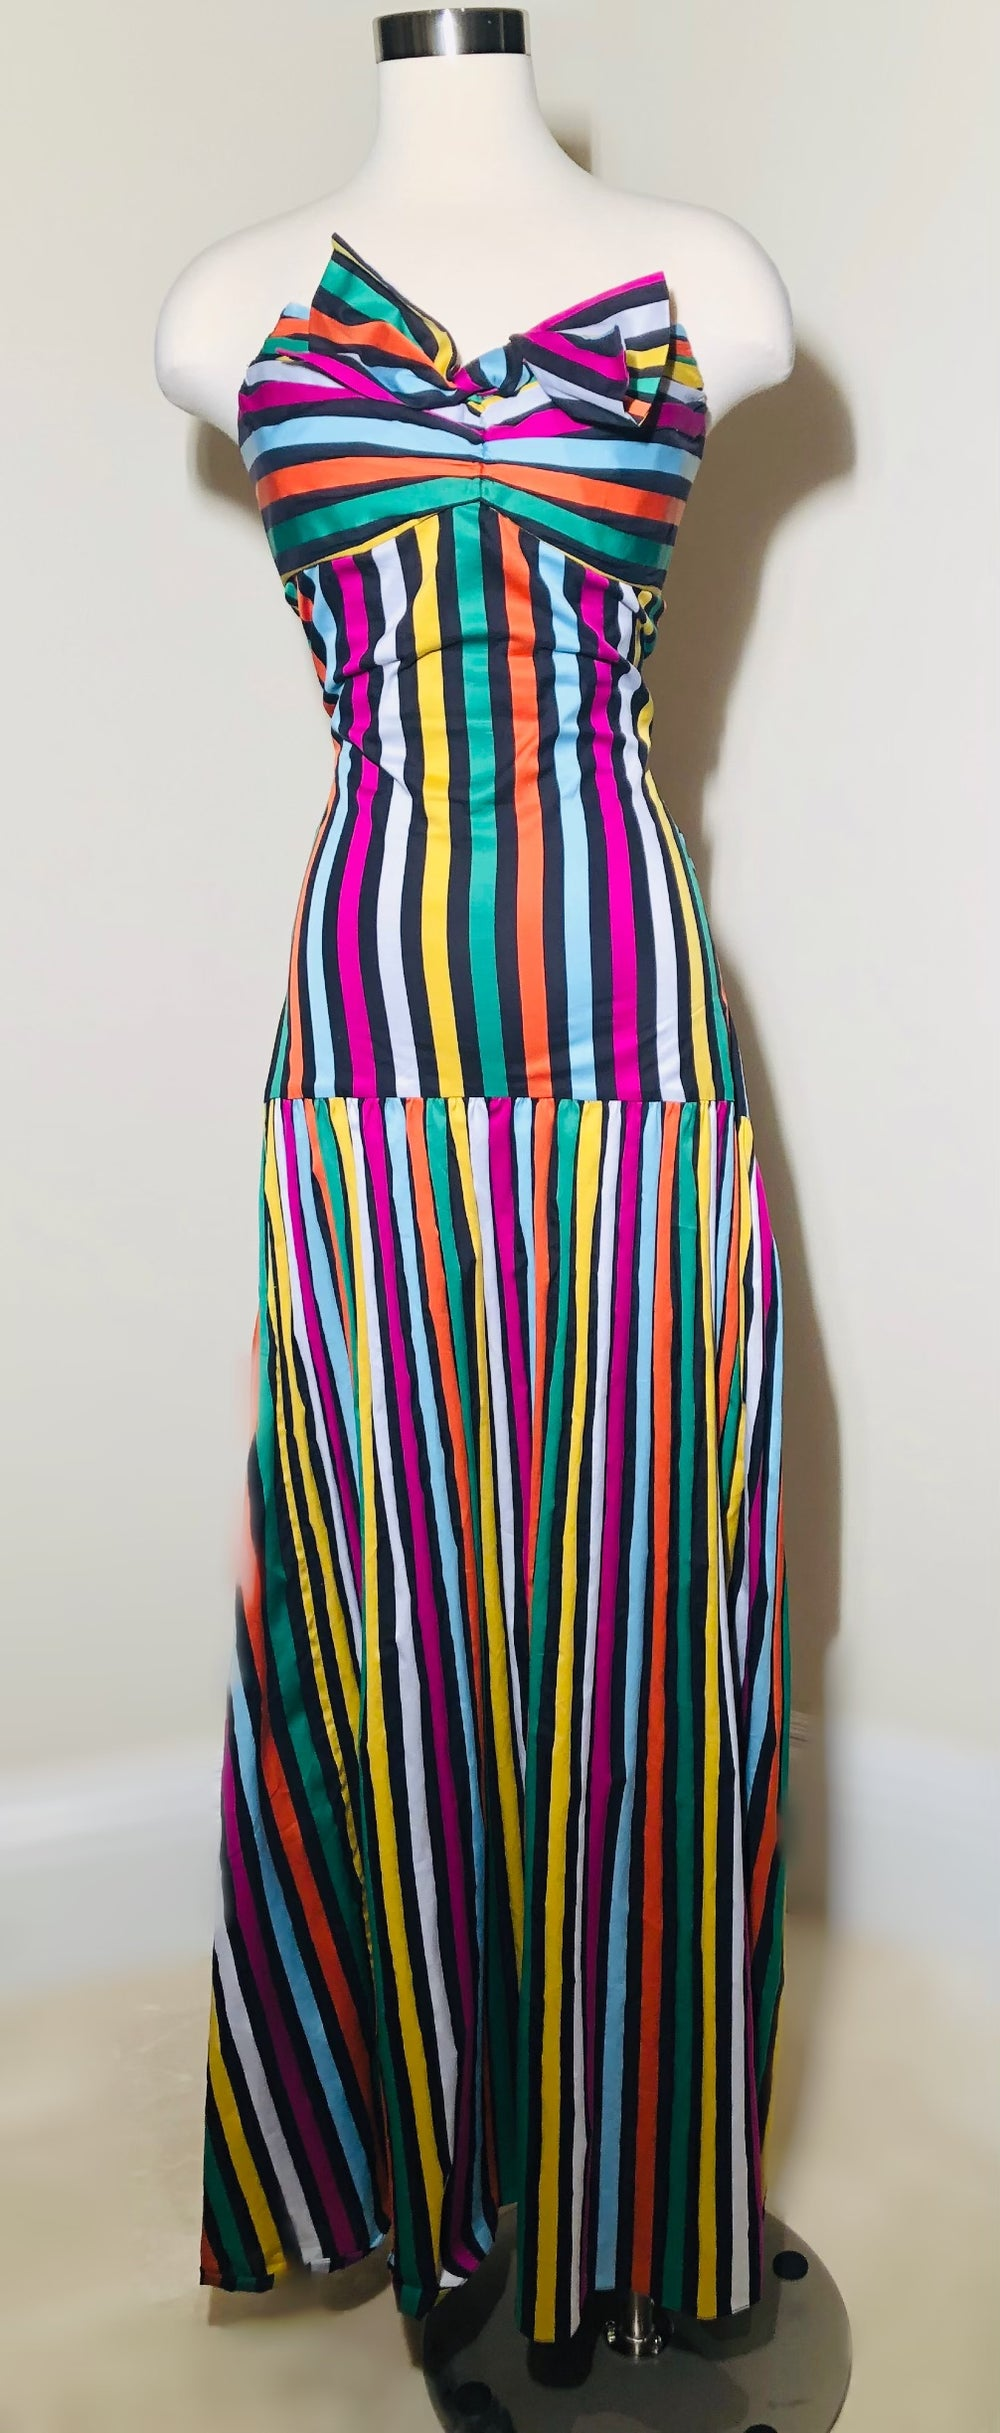 Caroline Constas Striped Multicolored Maxi Dress Sz Sm